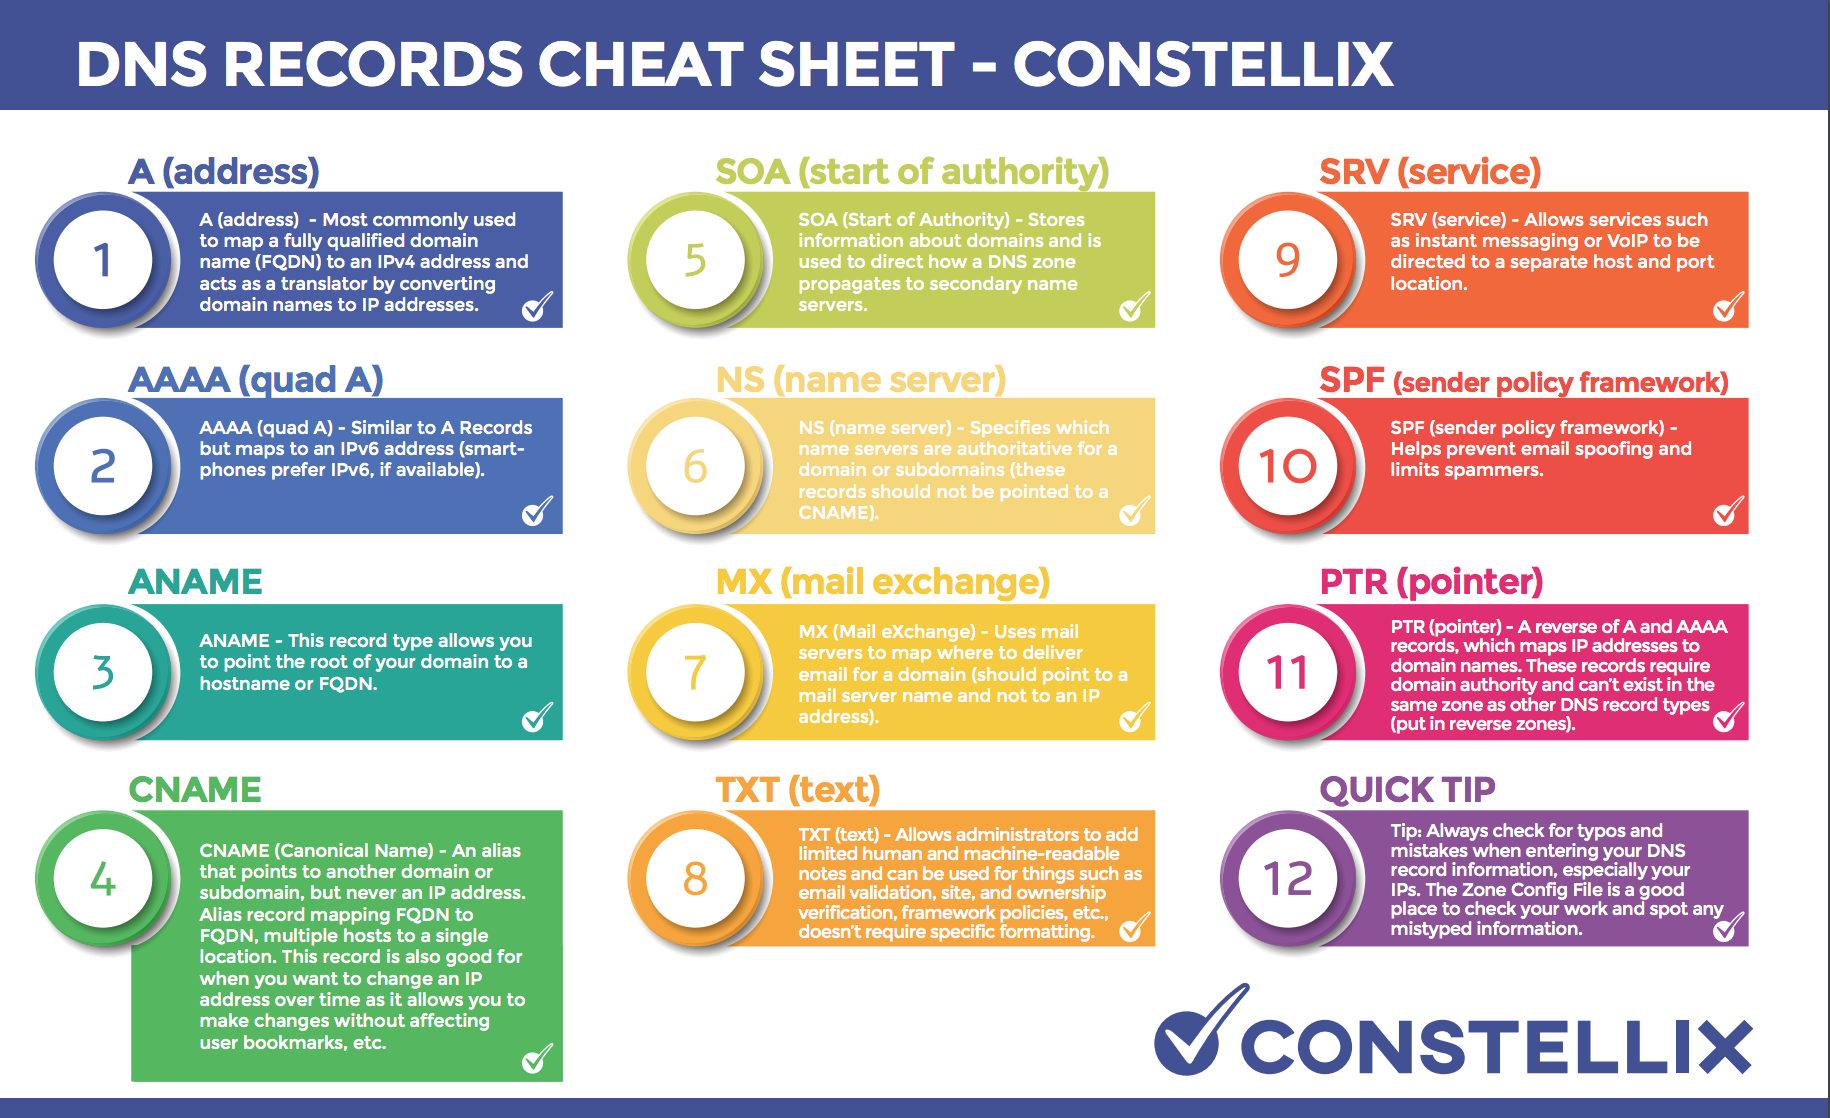 DNS Record Cheat Sheet - A, AAAA, ANAME, CNAME, SOA, NS, MX, TXT, SRV, SPF, PTR records and examples